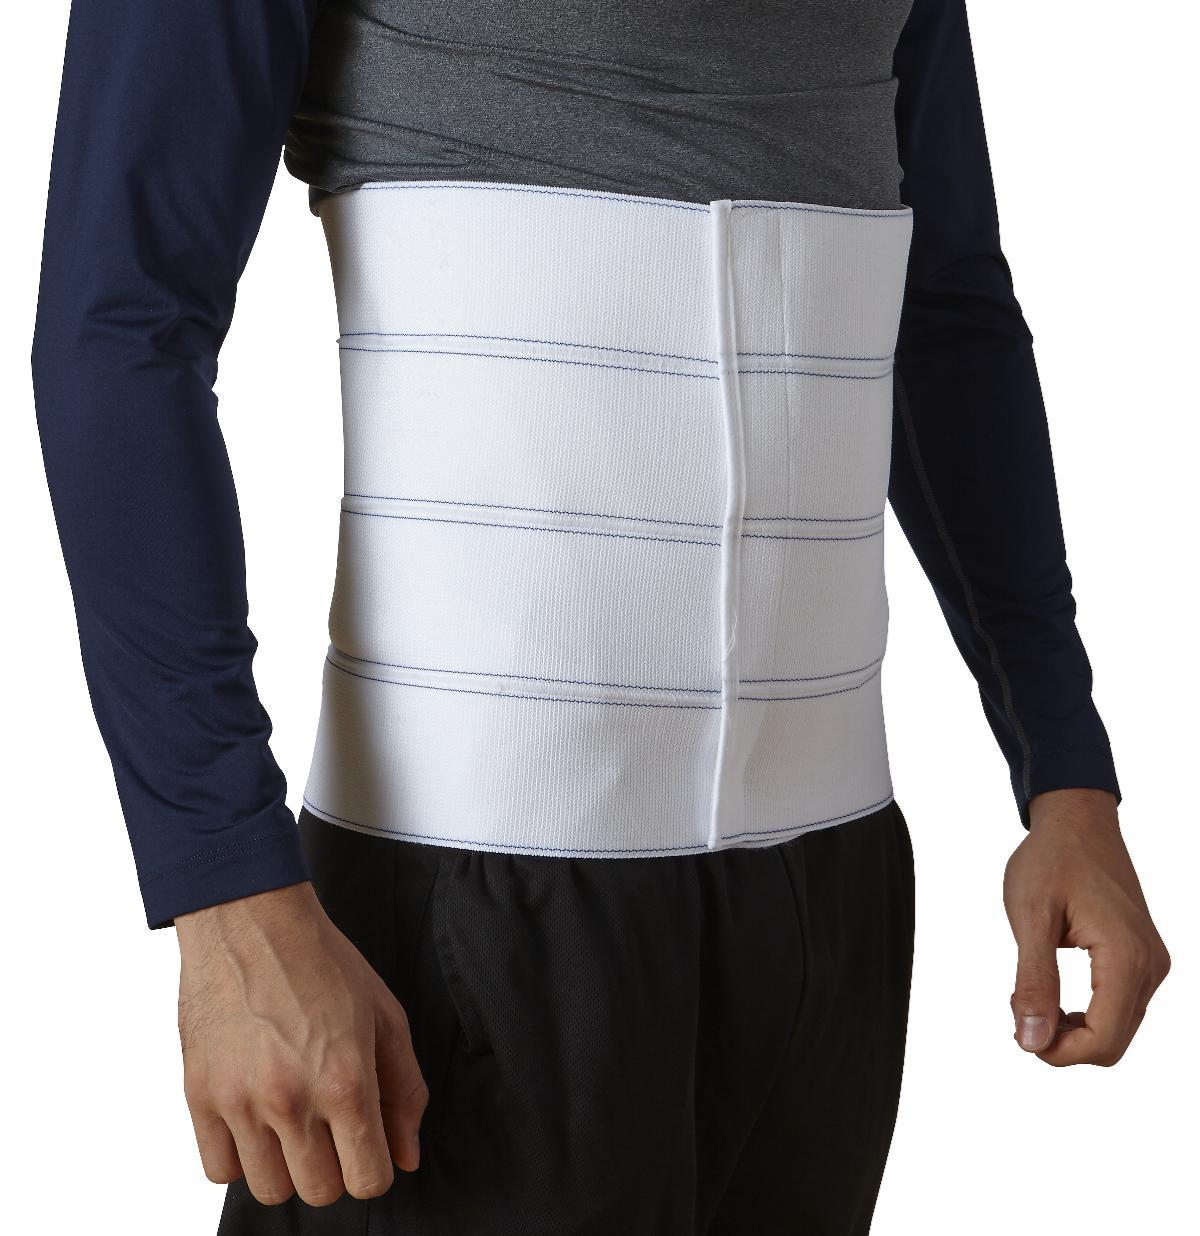 Binder Abdominal12 4-panl Std 3xl Ea - Ort213003xl - Patient Therapy Rehabilitation Orthopedic Soft Goods Abdominal Binders Ribs Belts ORT213003XL